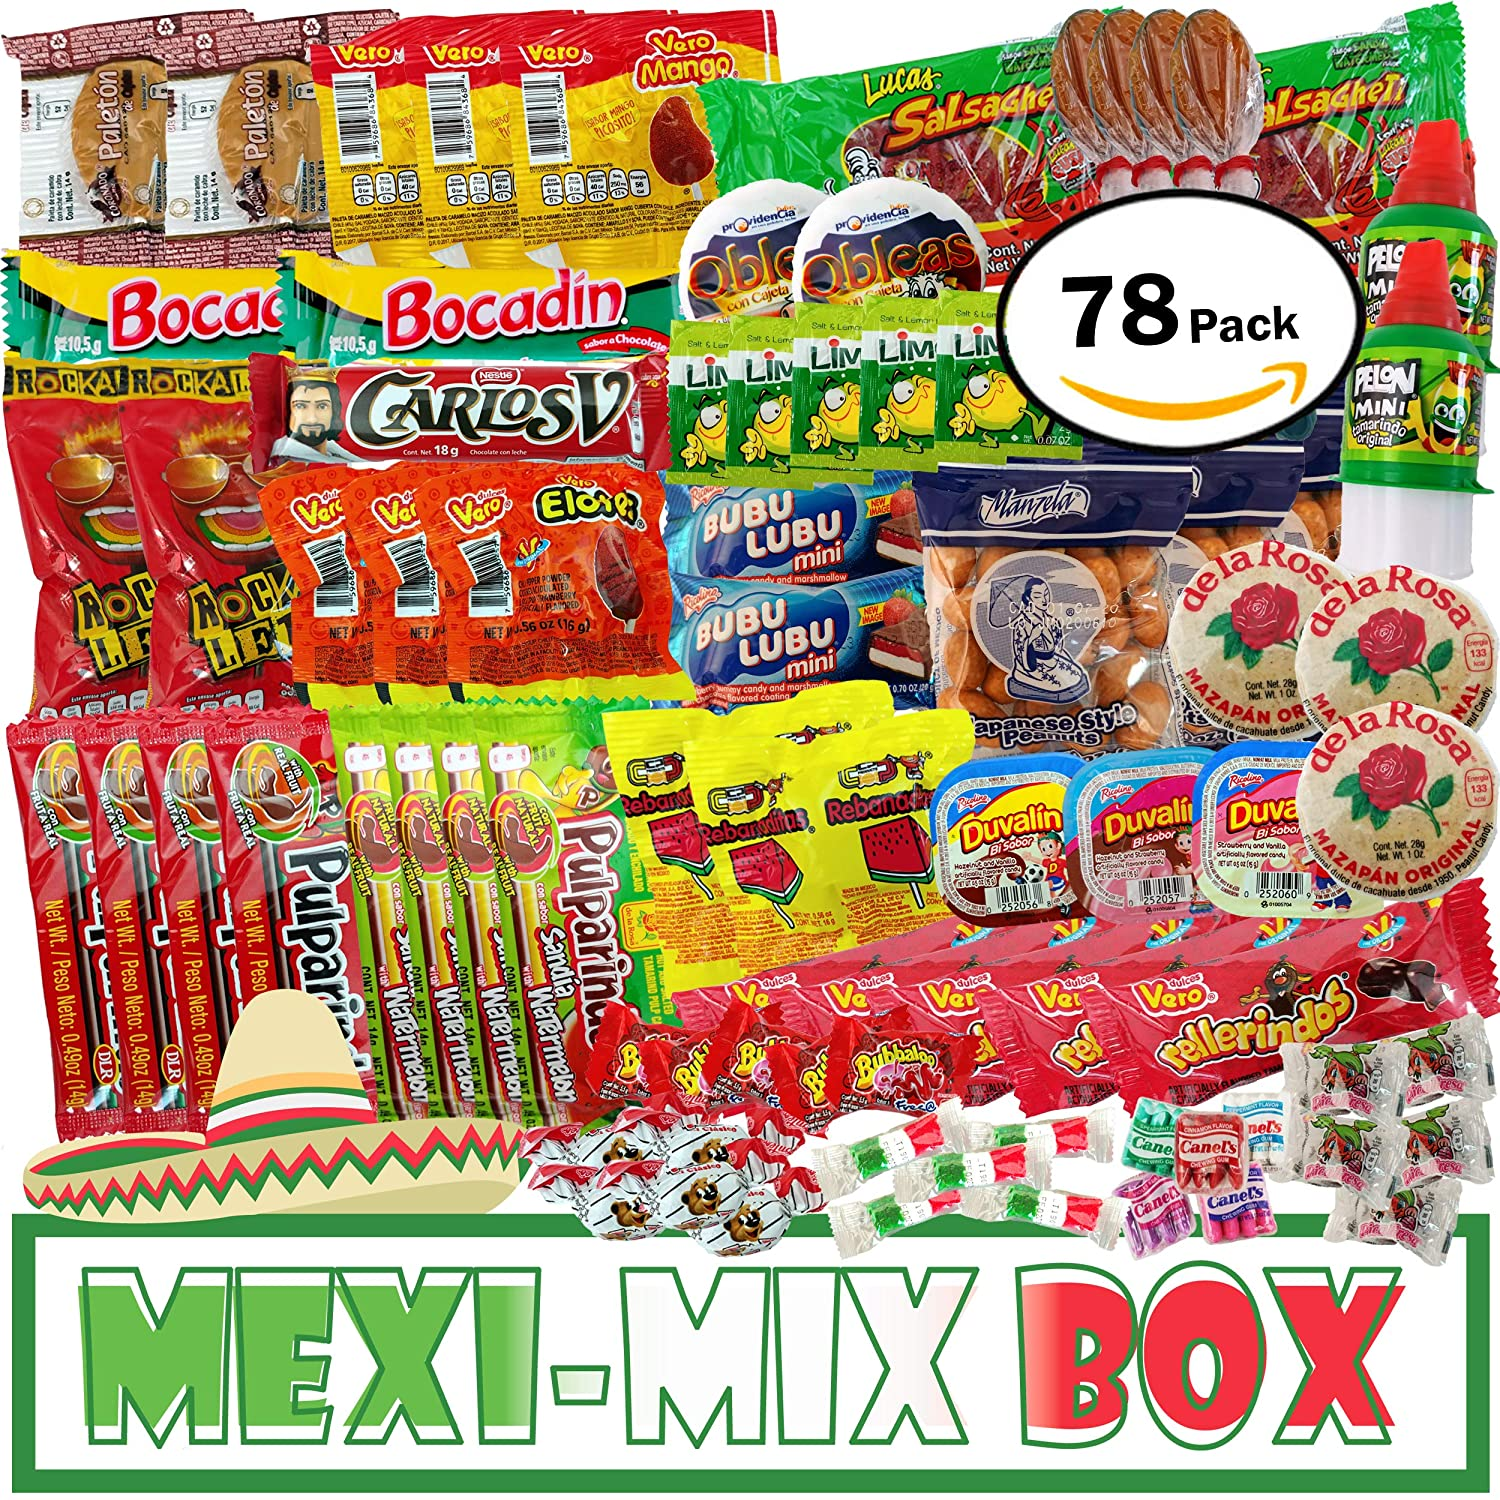 Mexi-Mix Box Candy 78 Count Assortment Mexican Candy Care ...